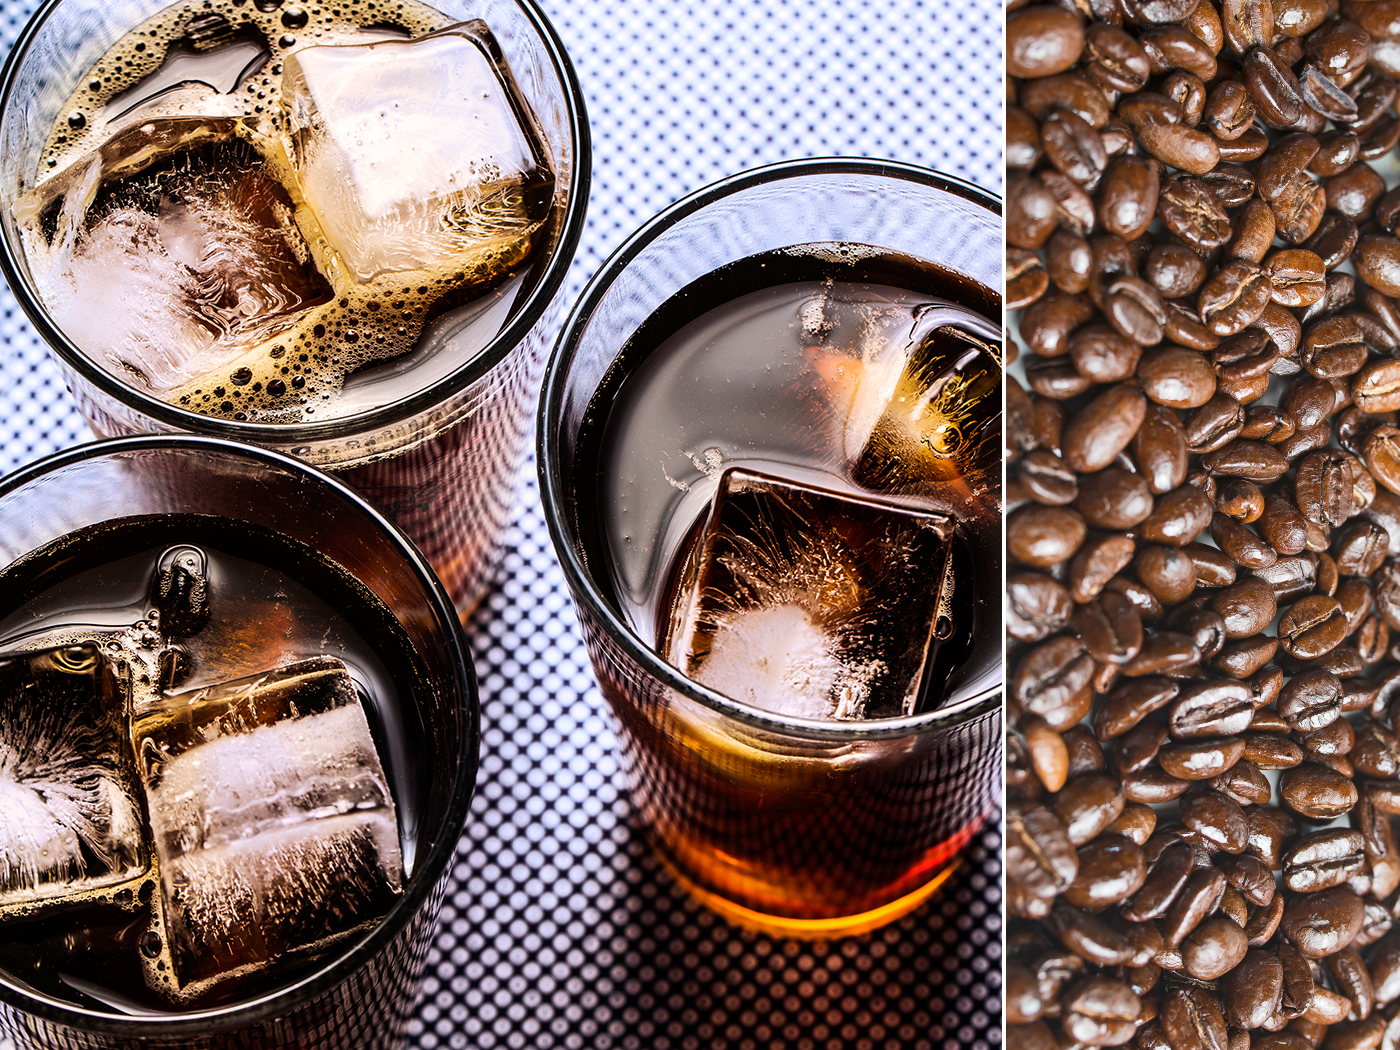 Iced-Coffee2-Katie-B-Foster-Photography.jpg